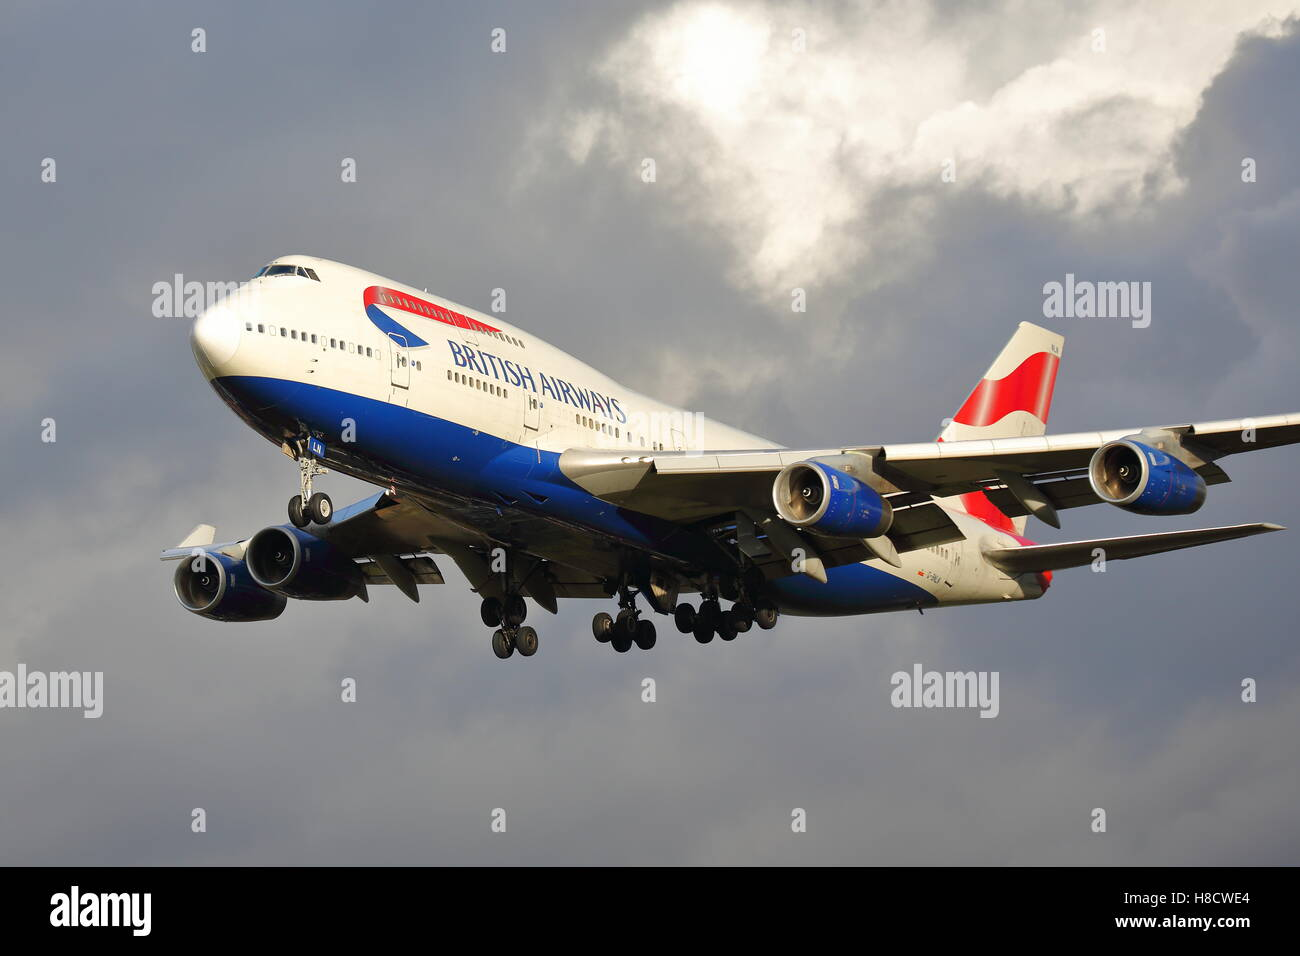 British Airways Boeing 747-400 G-BNLN landing at London Heathrow Airport, UK Stock Photo